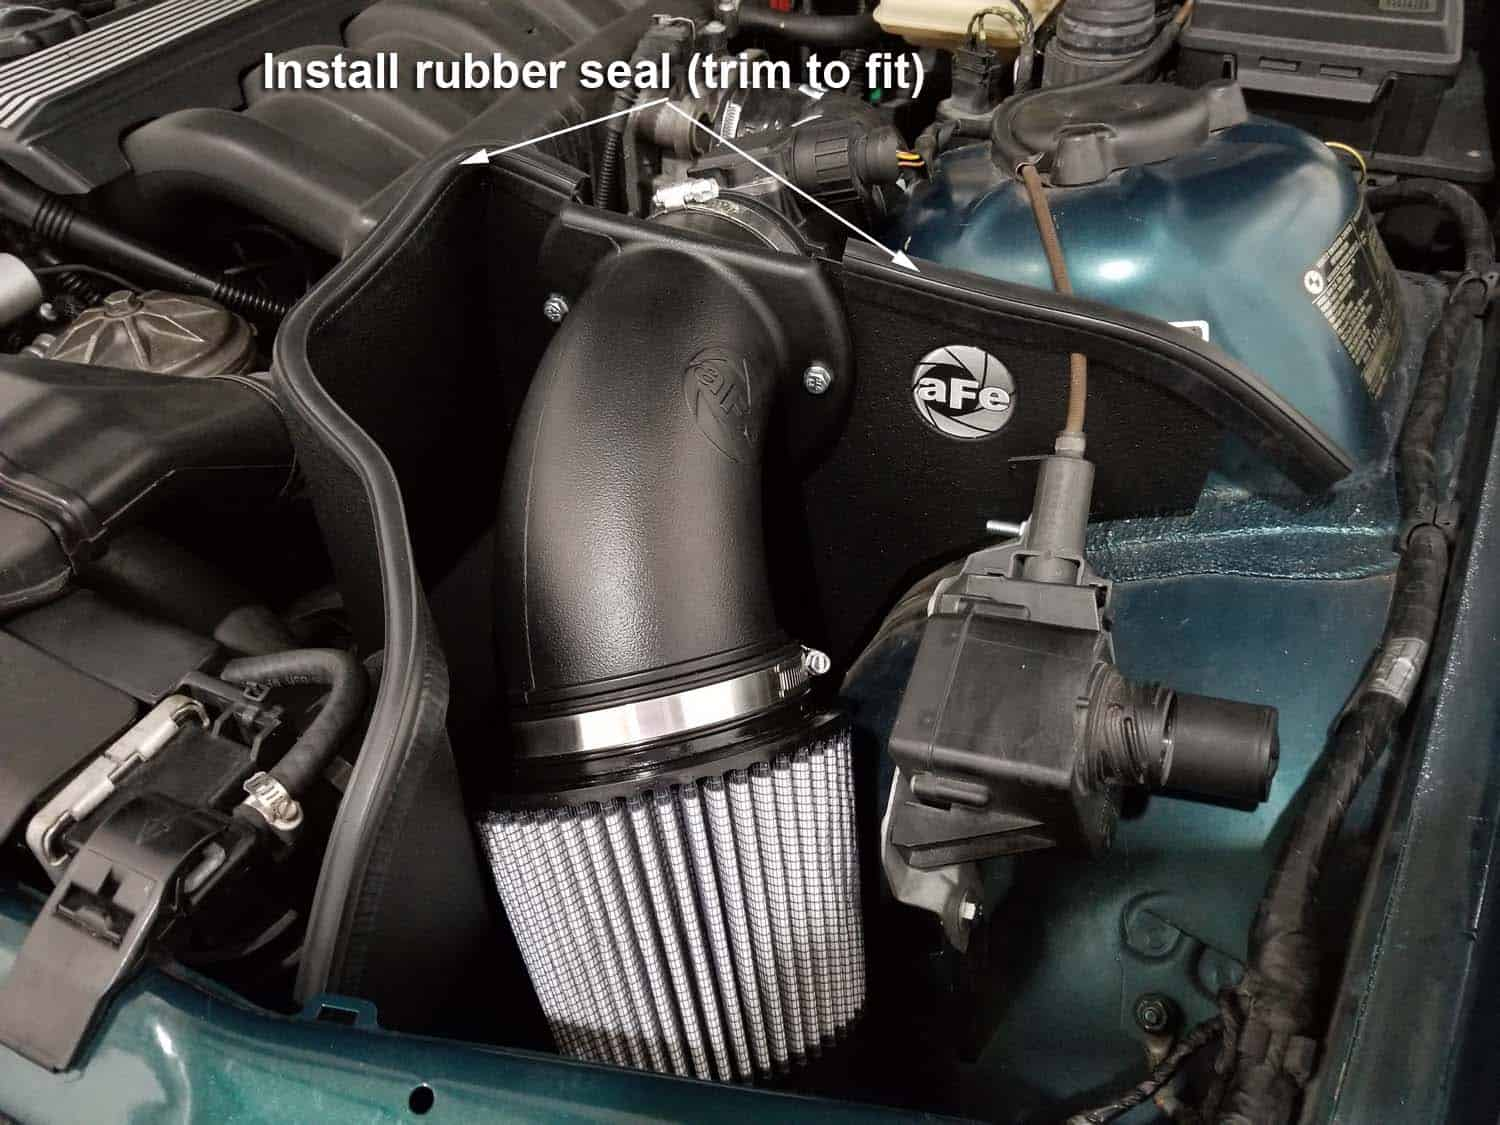 BMW E36 cold air intake - trim the rubber seal to fit